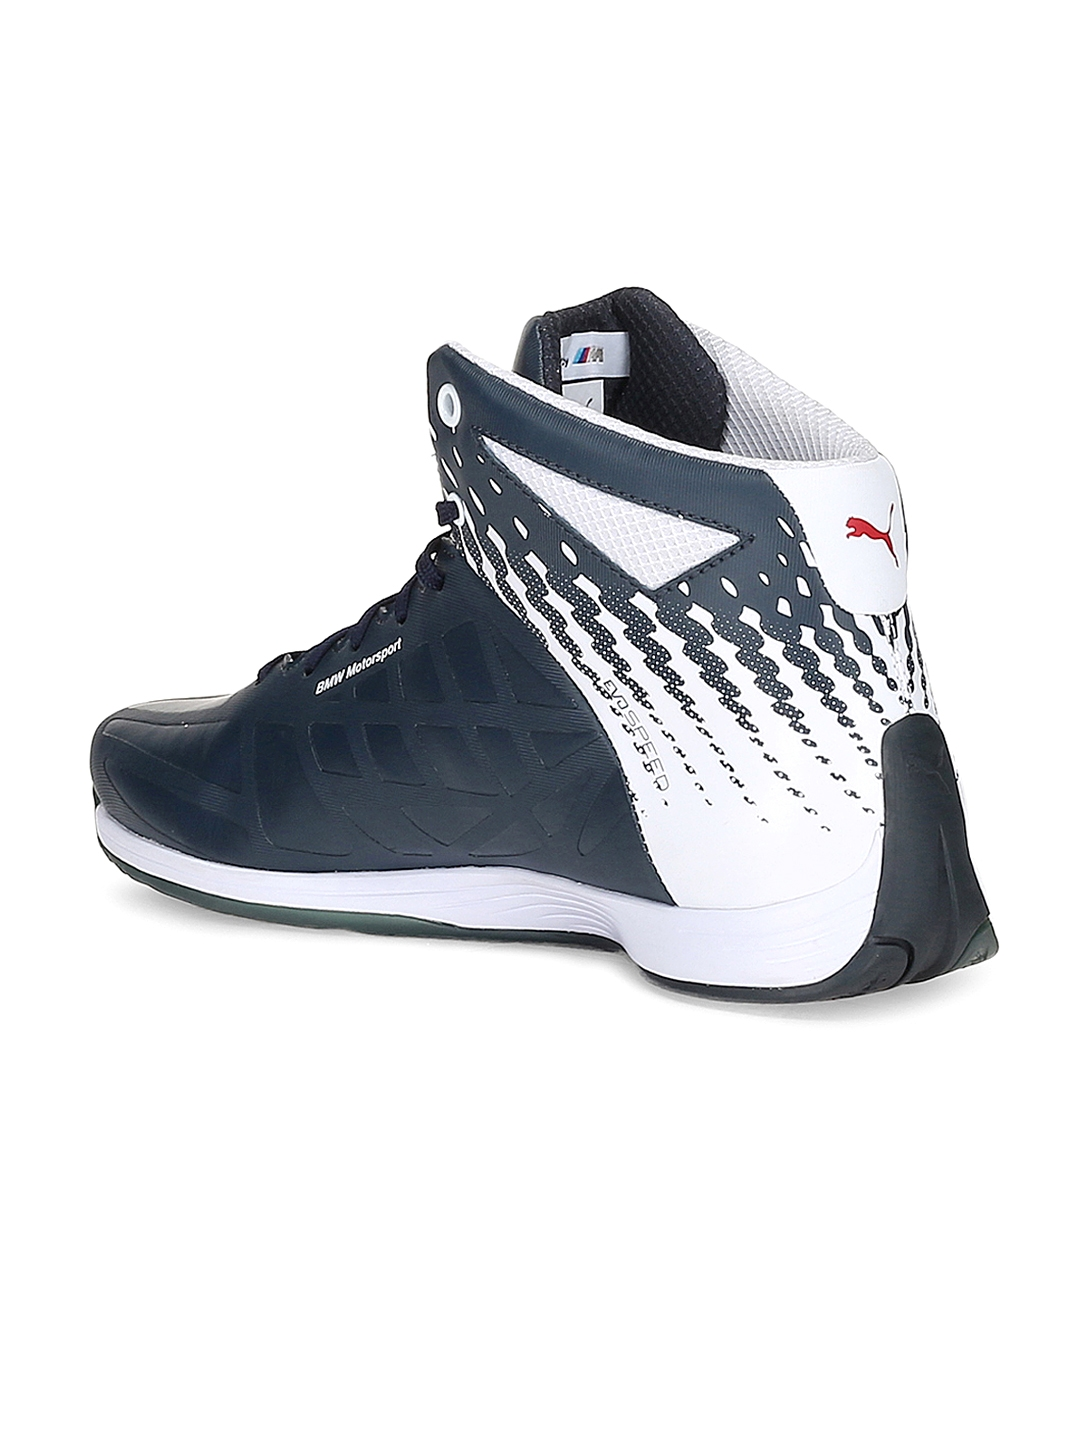 Buy PUMA Unisex Navy BMW MS EvoSpeed Mid Printed Mid Top Sneakers ... ac1cfabd8d